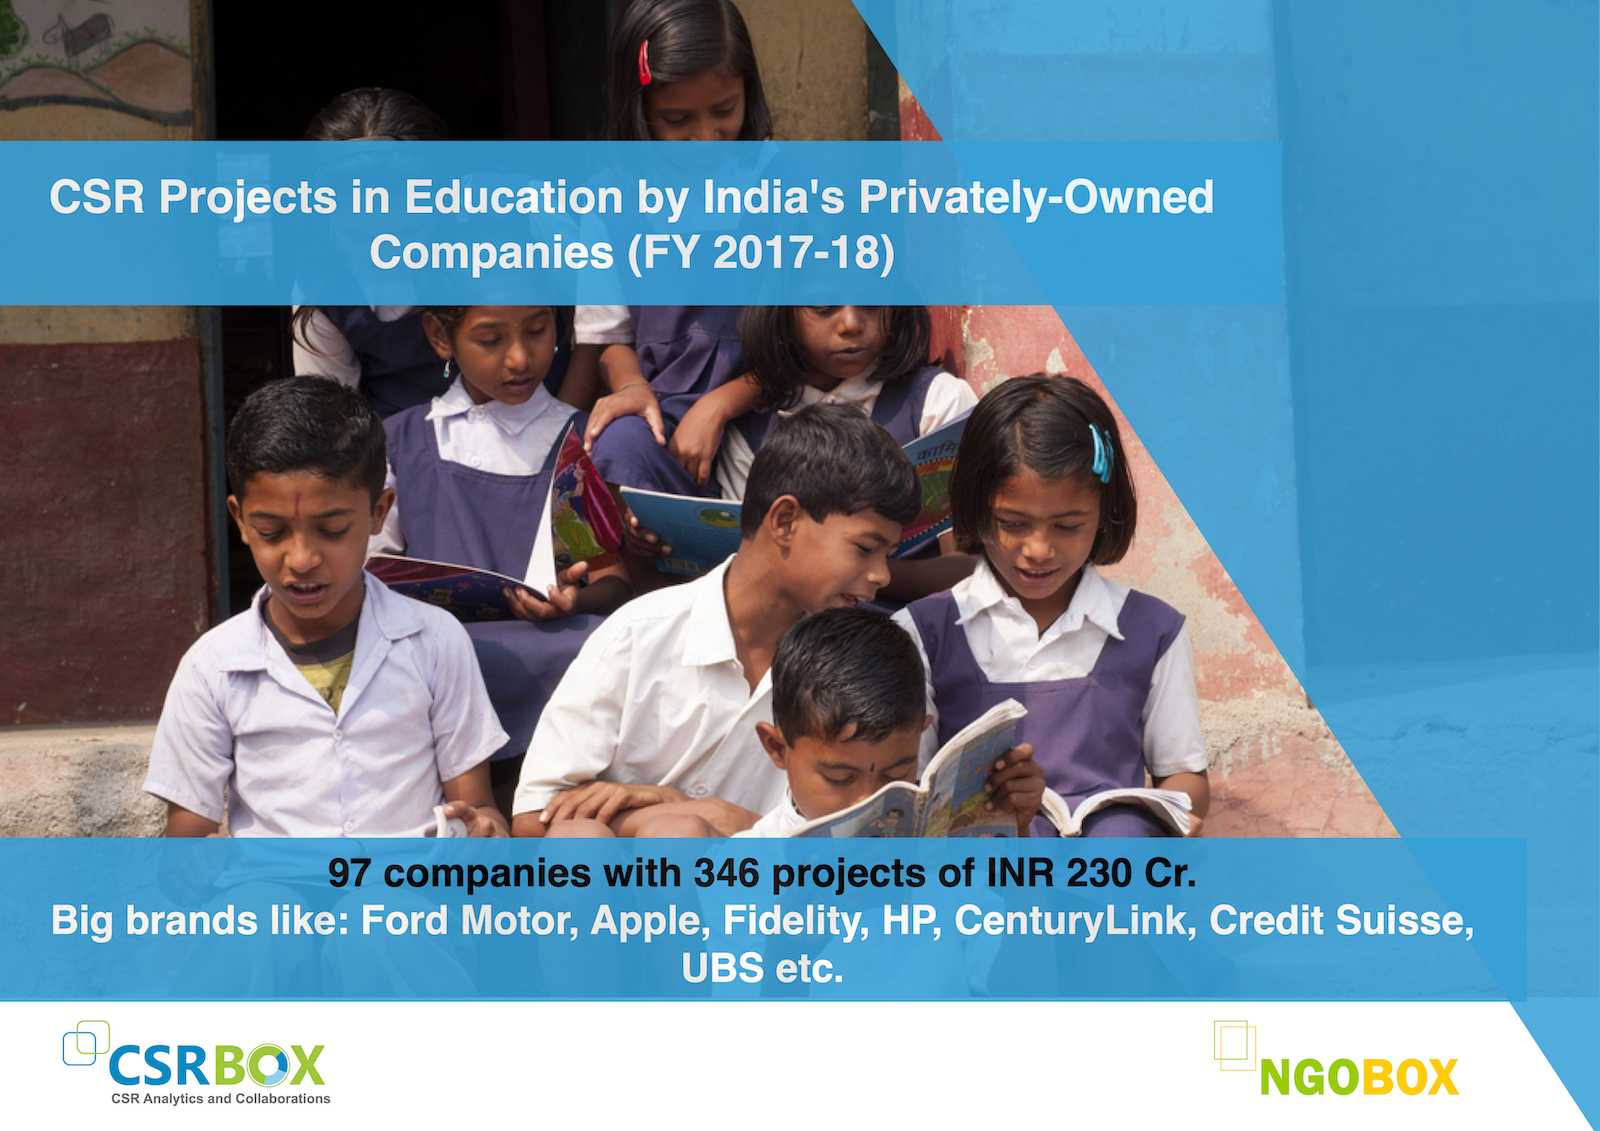 CSR in Education in India's Privately-owned companies